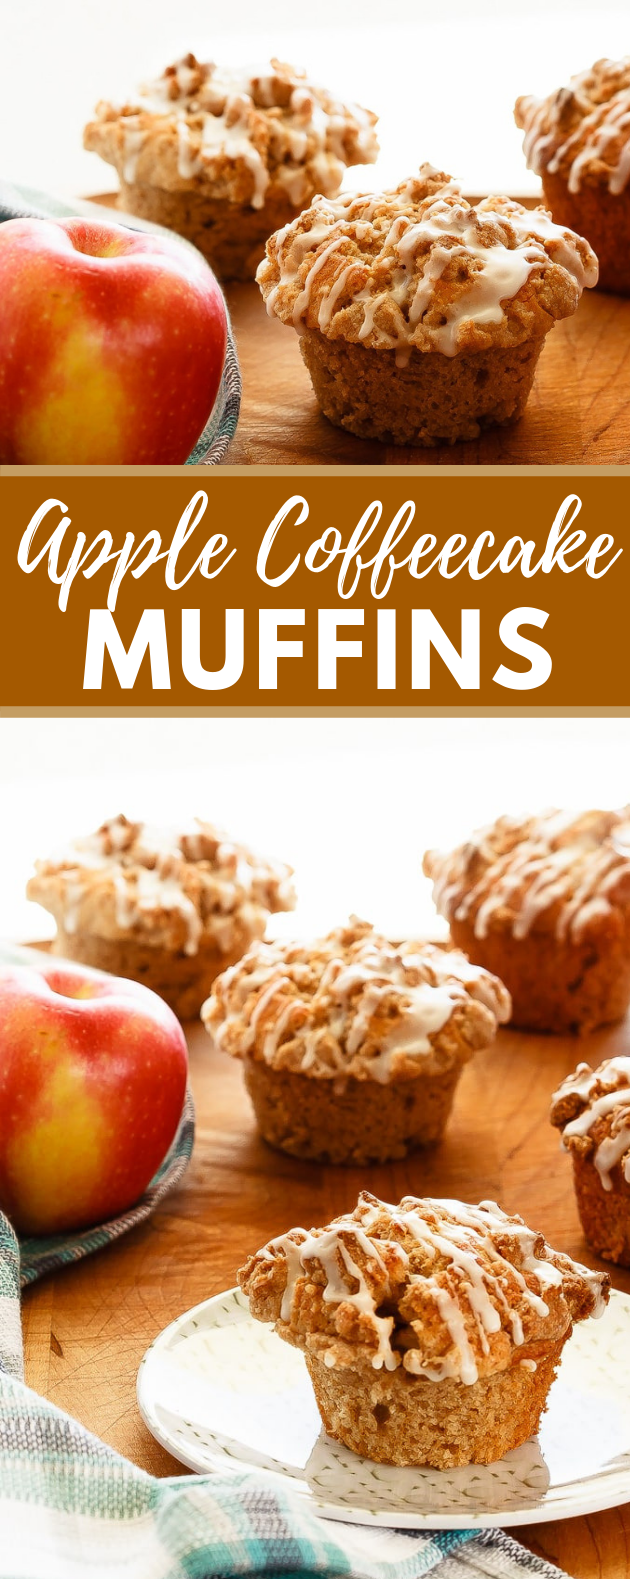 Apple Muffins with Crumb Topping #cakes #dessert